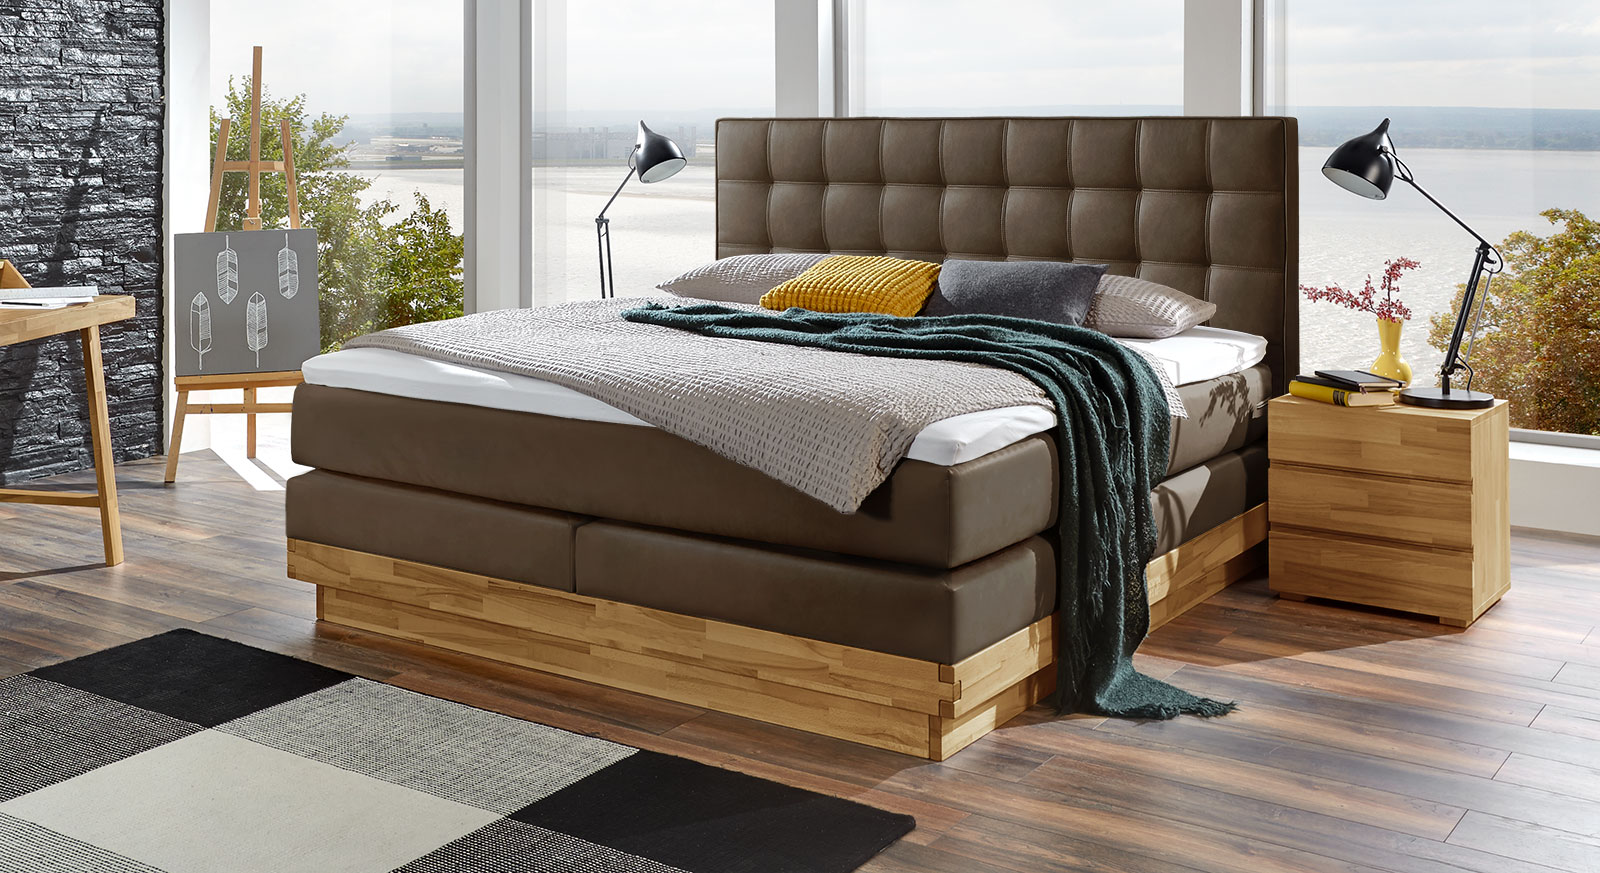 boxspringbett mit ttf matratze aus kernbuche san carlos. Black Bedroom Furniture Sets. Home Design Ideas